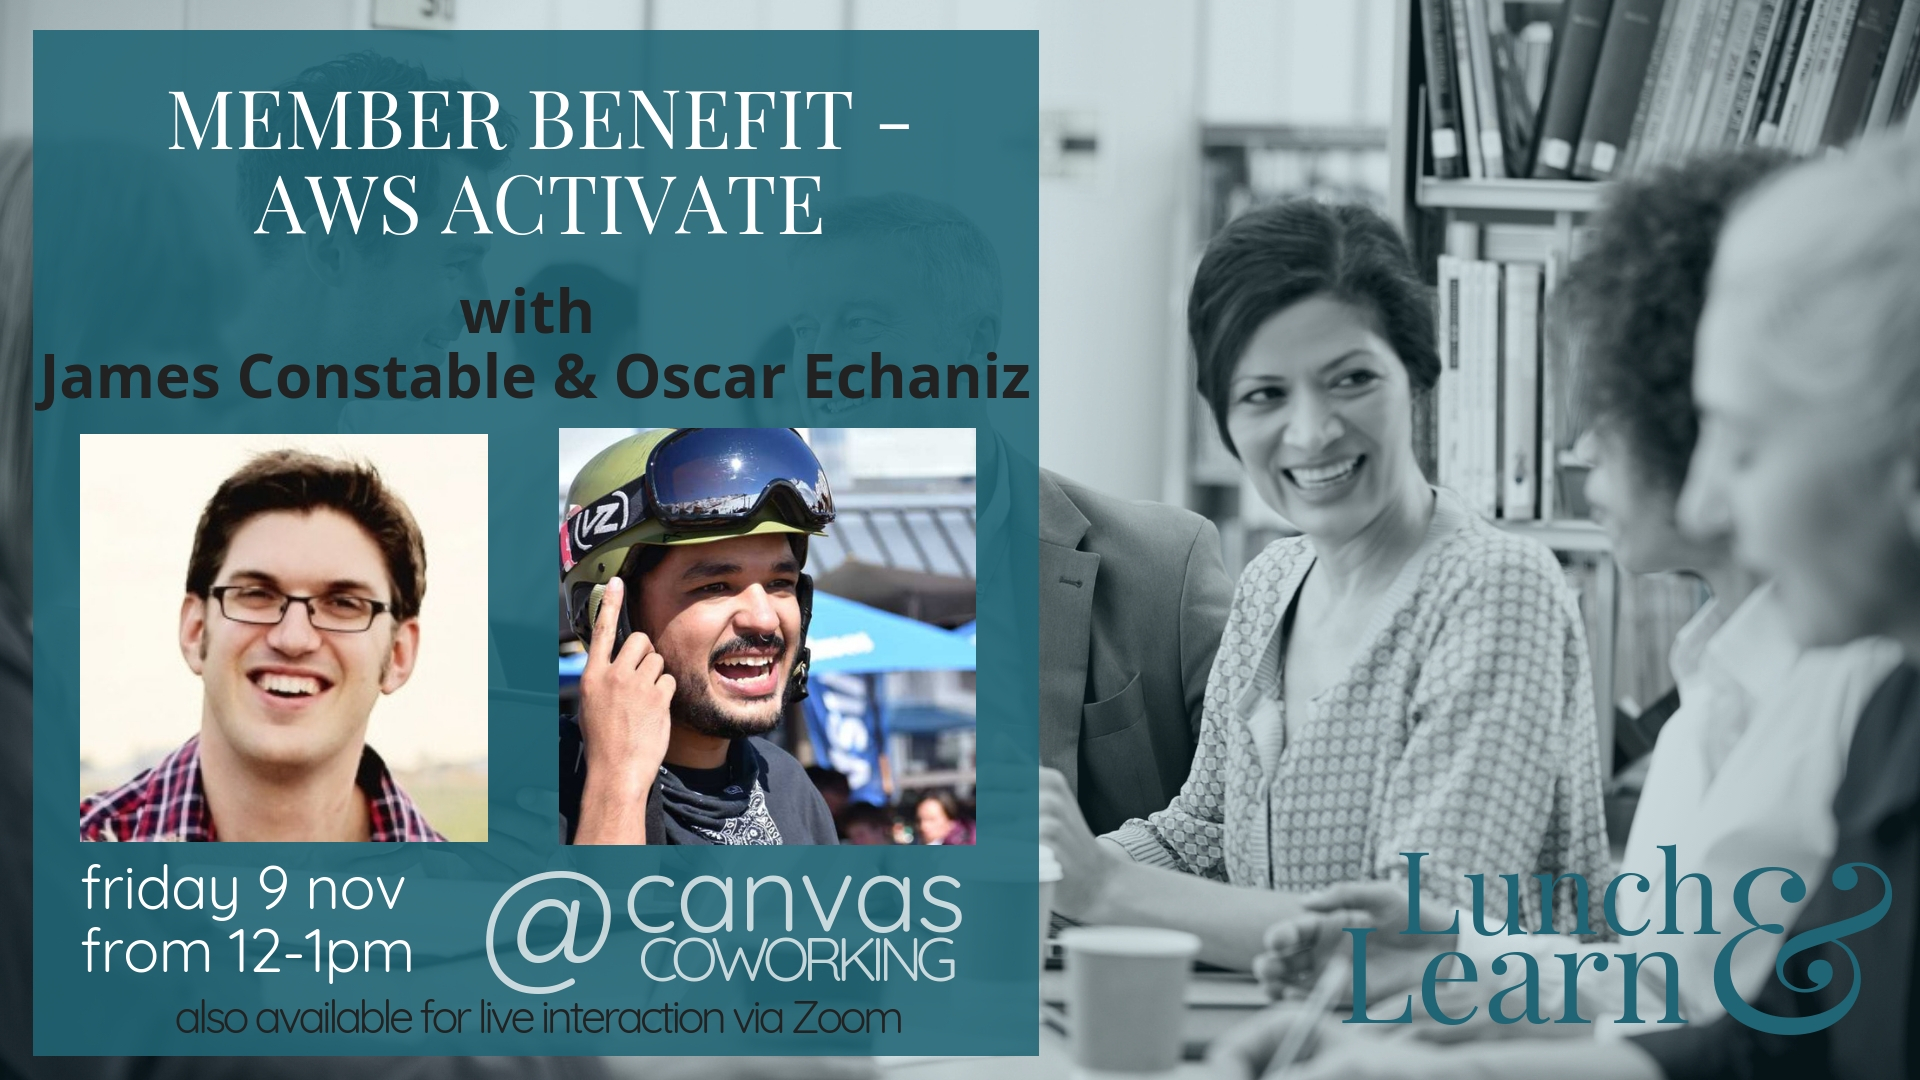 Lunch & Learn - AWS Activate - Member Benefit - Canvas Coworking